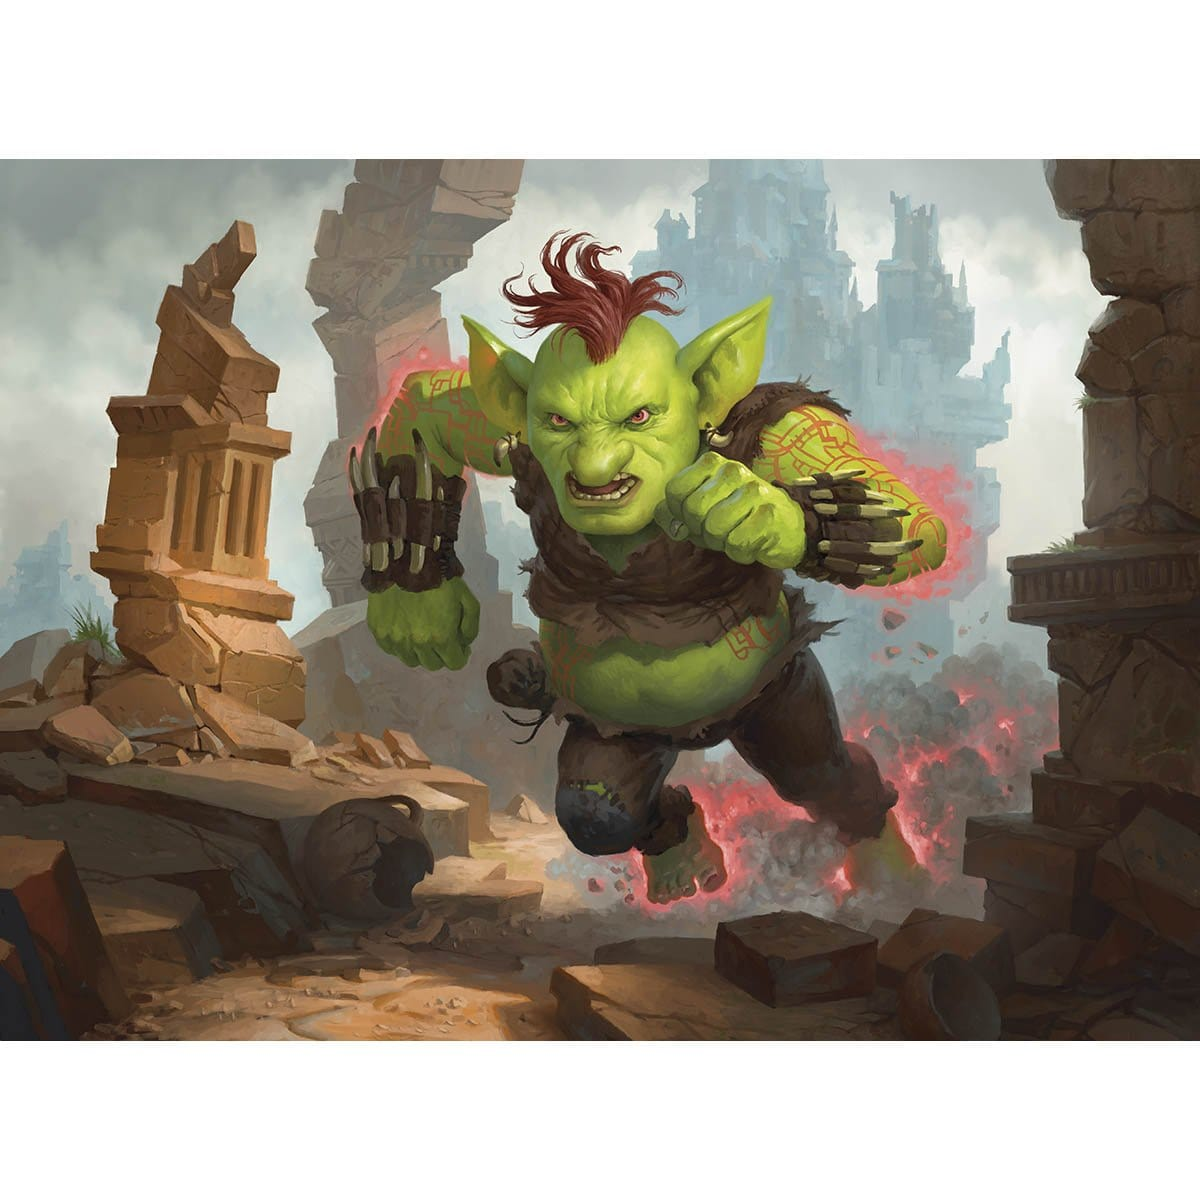 Raging Goblin Print - Print - Original Magic Art - Accessories for Magic the Gathering and other card games